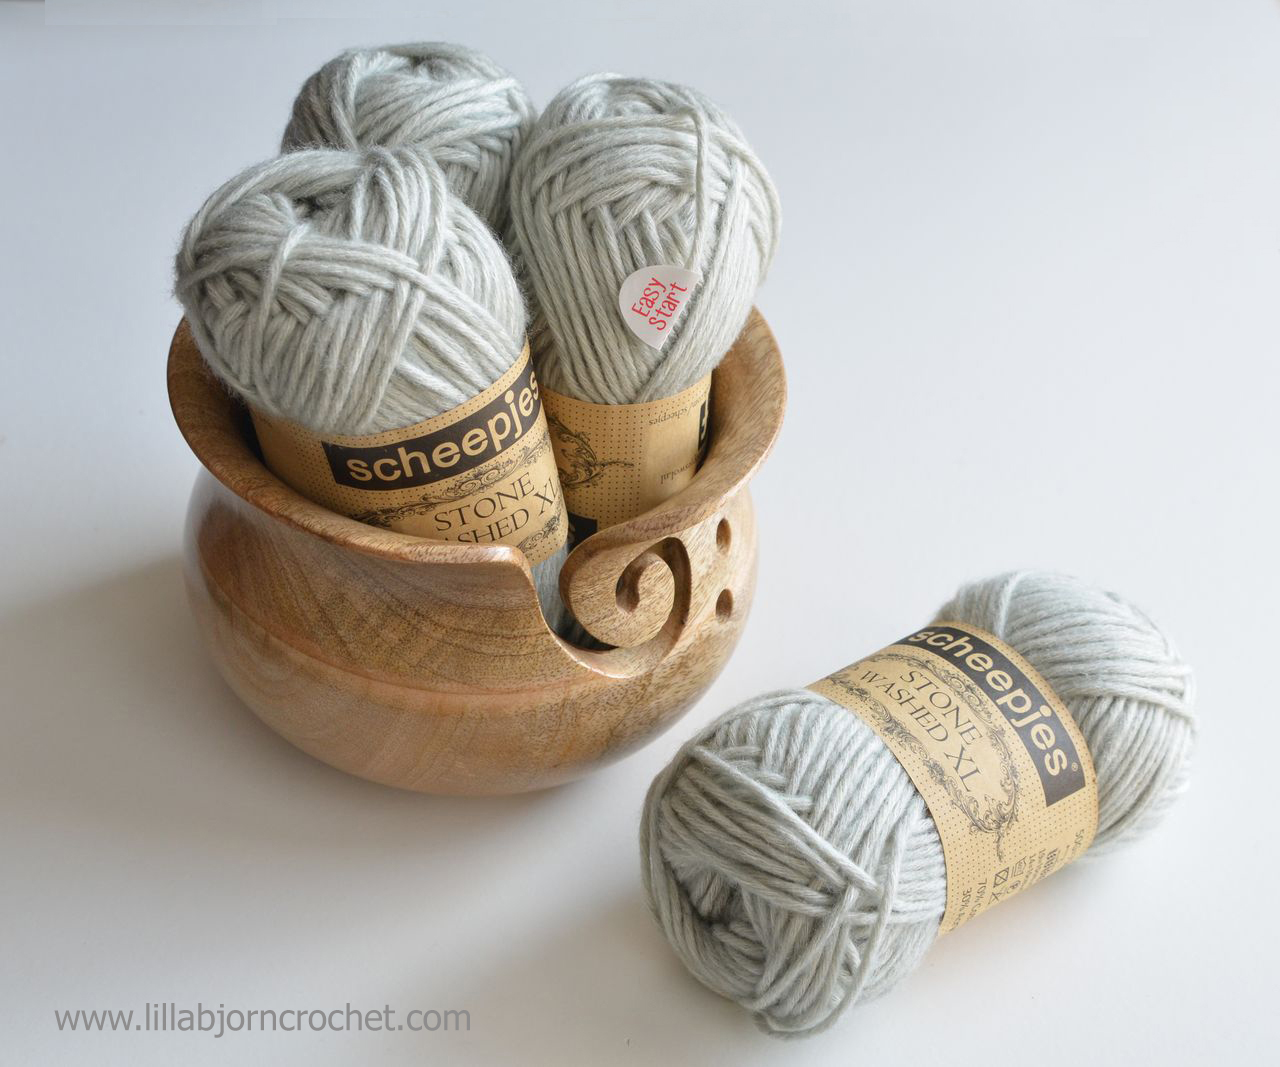 Stone Washed XL yarn by Scheepjes